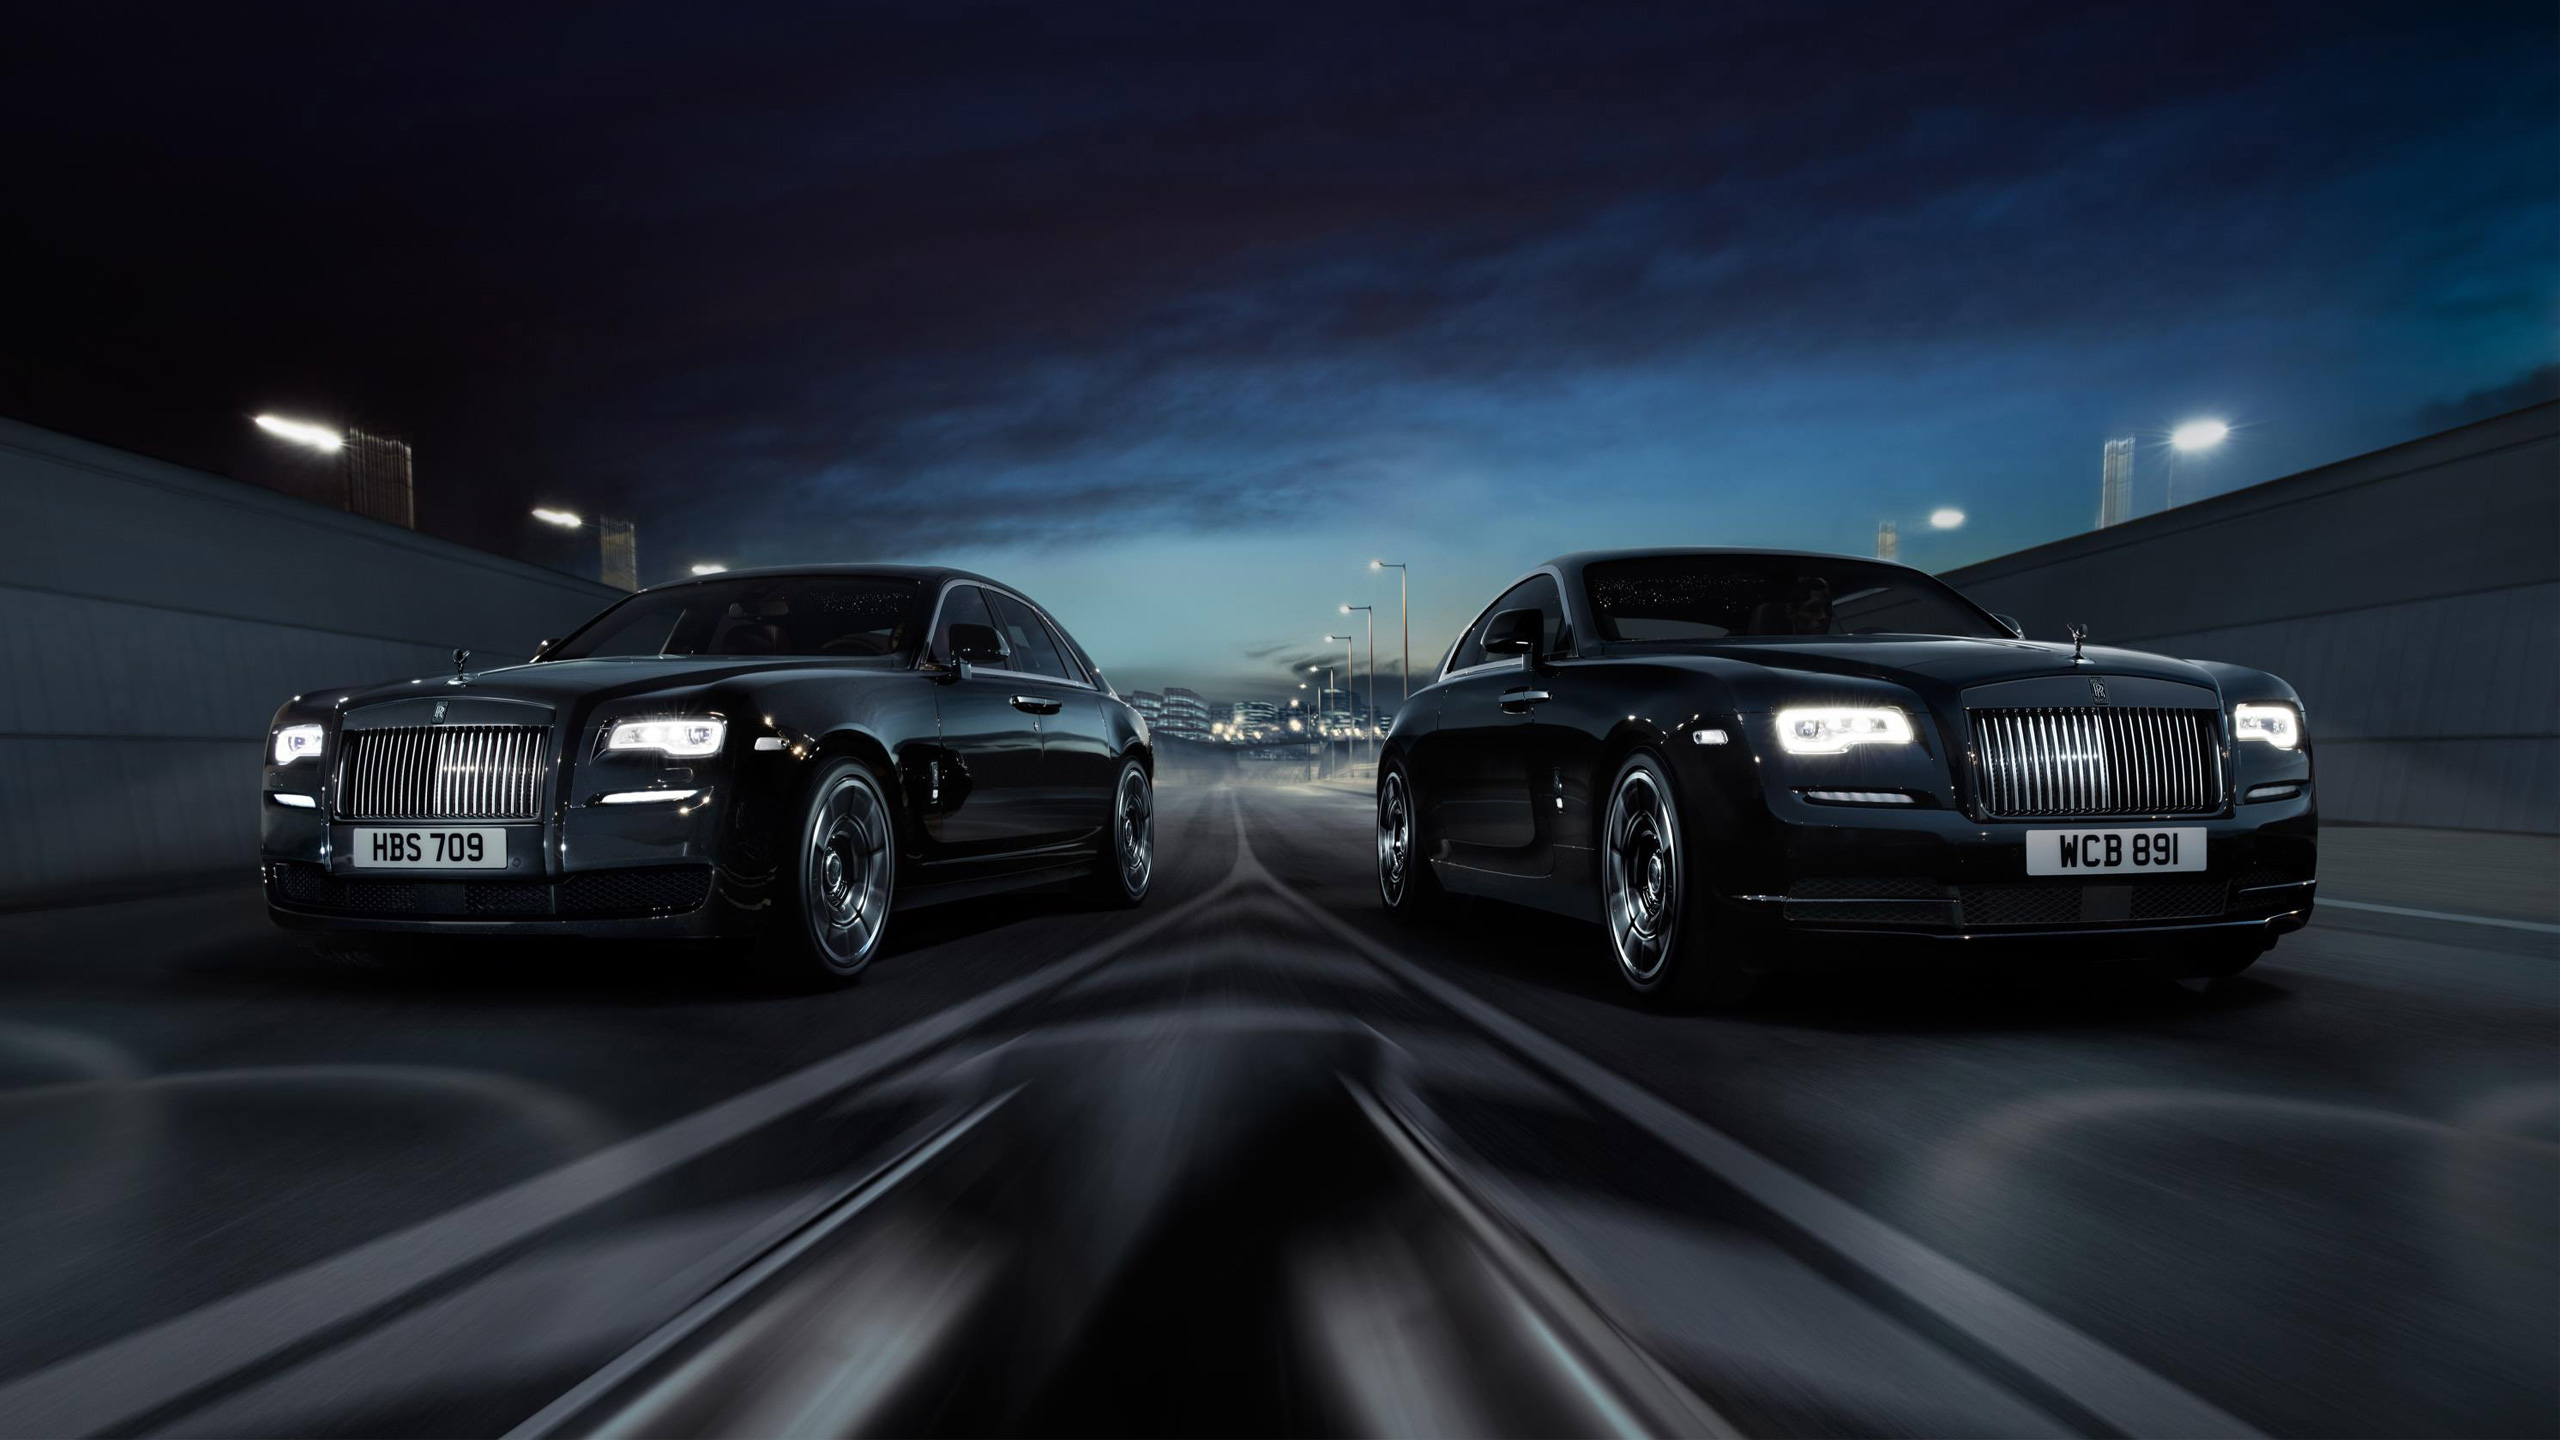 2016 rolls royce ghost wraith black badge wallpaper | hd car